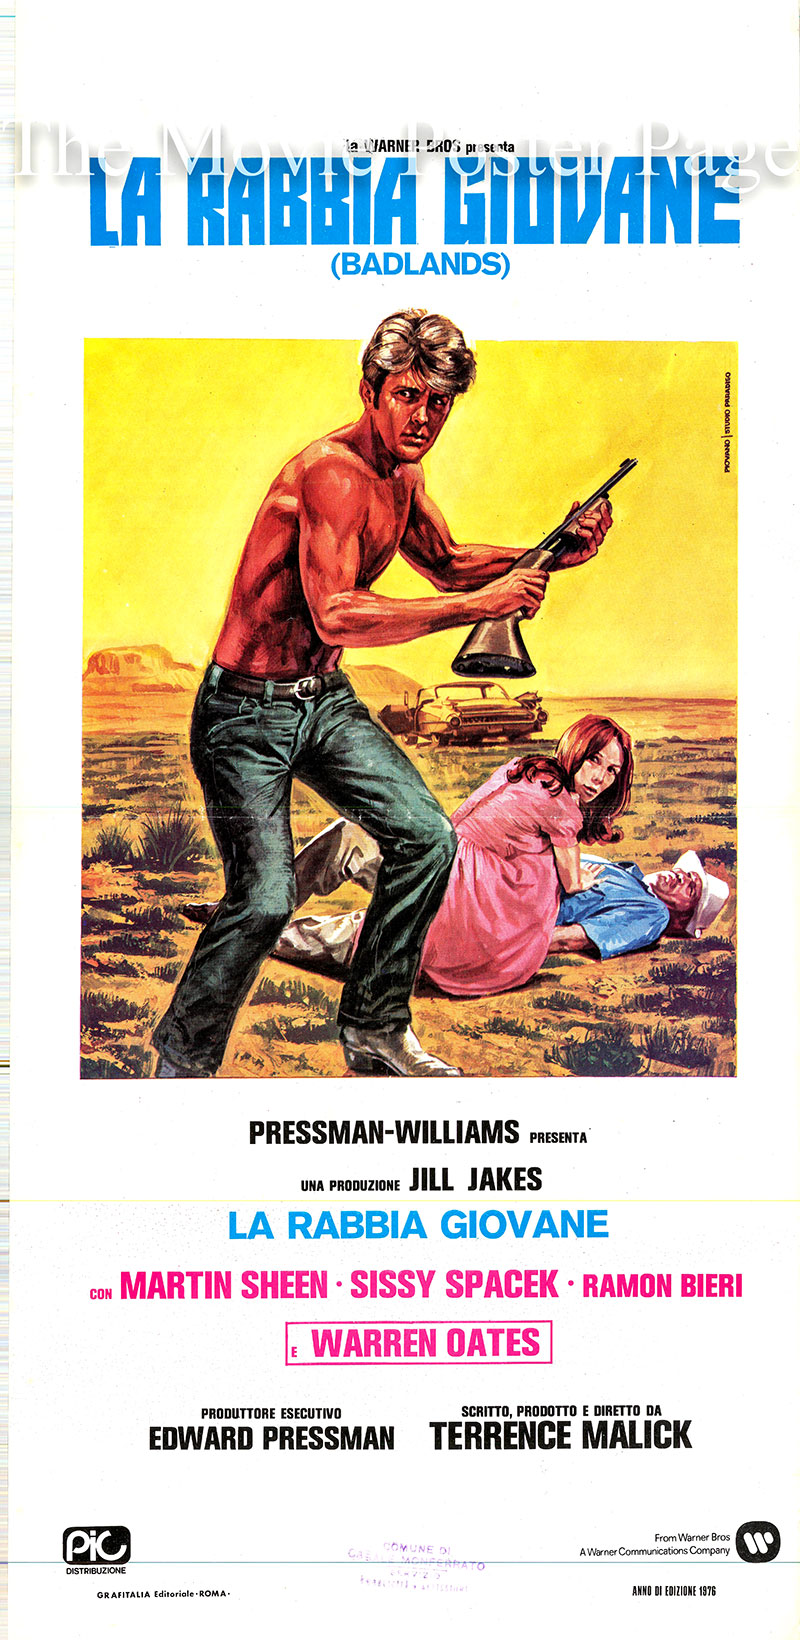 Pictured is an Italian locandina promotional poster for the 1973 Terrence Malick film Badlands starring Martin Sheen as Kit Carruthers.